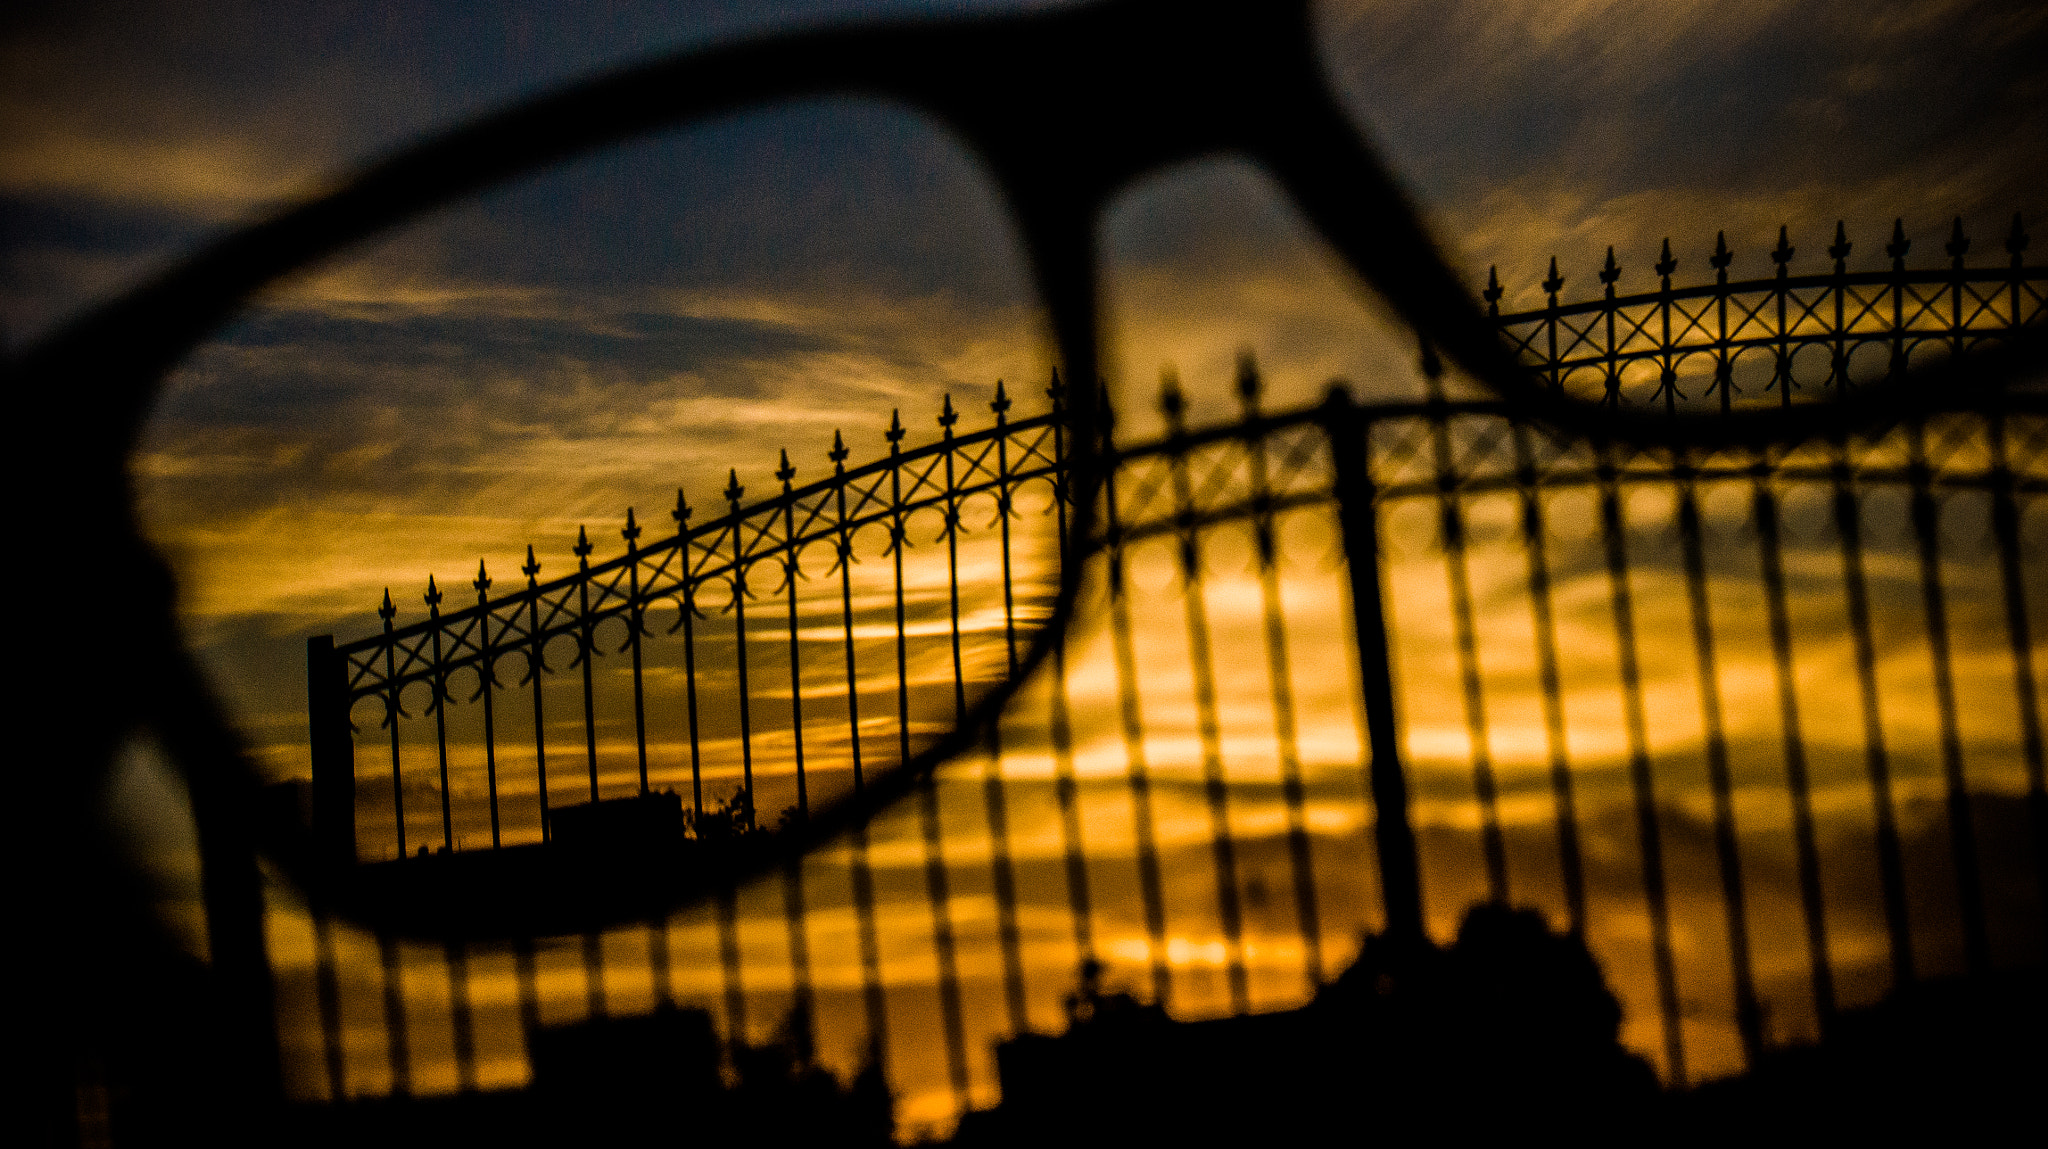 Photograph Barriers of love by Slim Garbouj on 500px